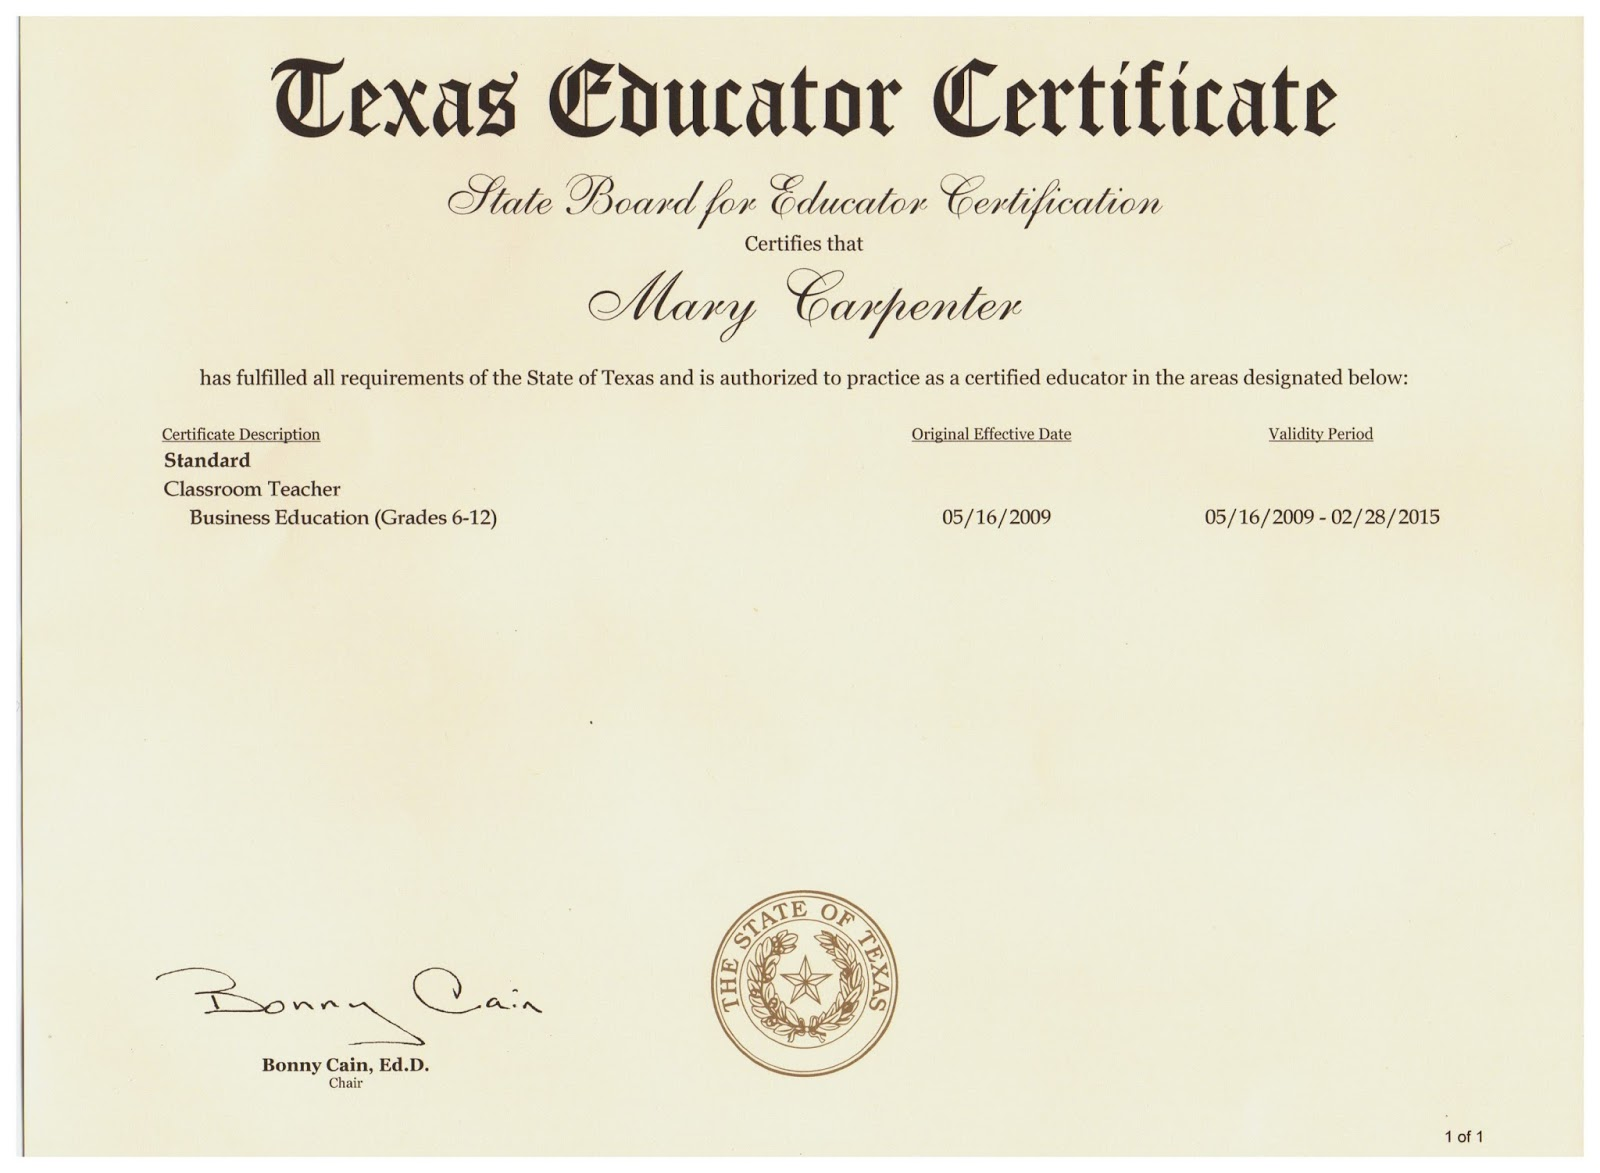 Examples of best certificate 2016 texas teacher certification tr71 1 1betcityfo Gallery